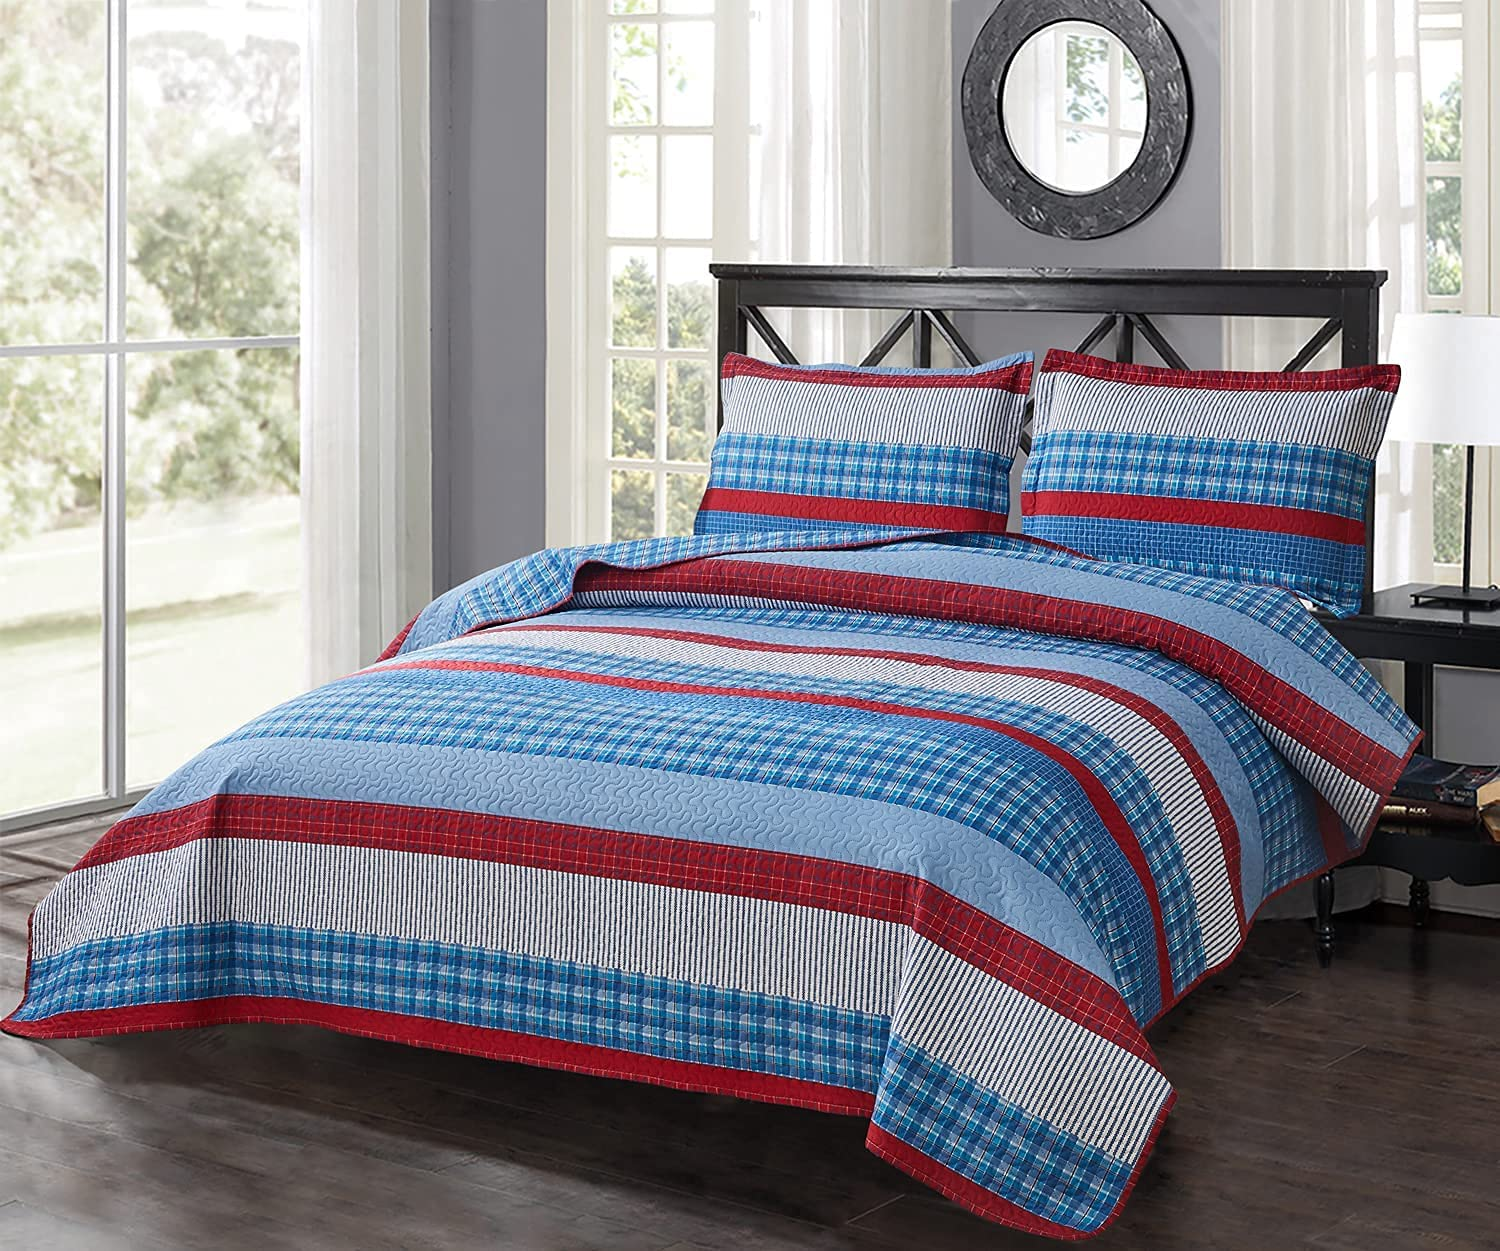 Stripe Bedding Sets Free shipping anywhere New Orleans Mall in the nation Lightweight Bedspreads Twin Rever 3Pcs Size